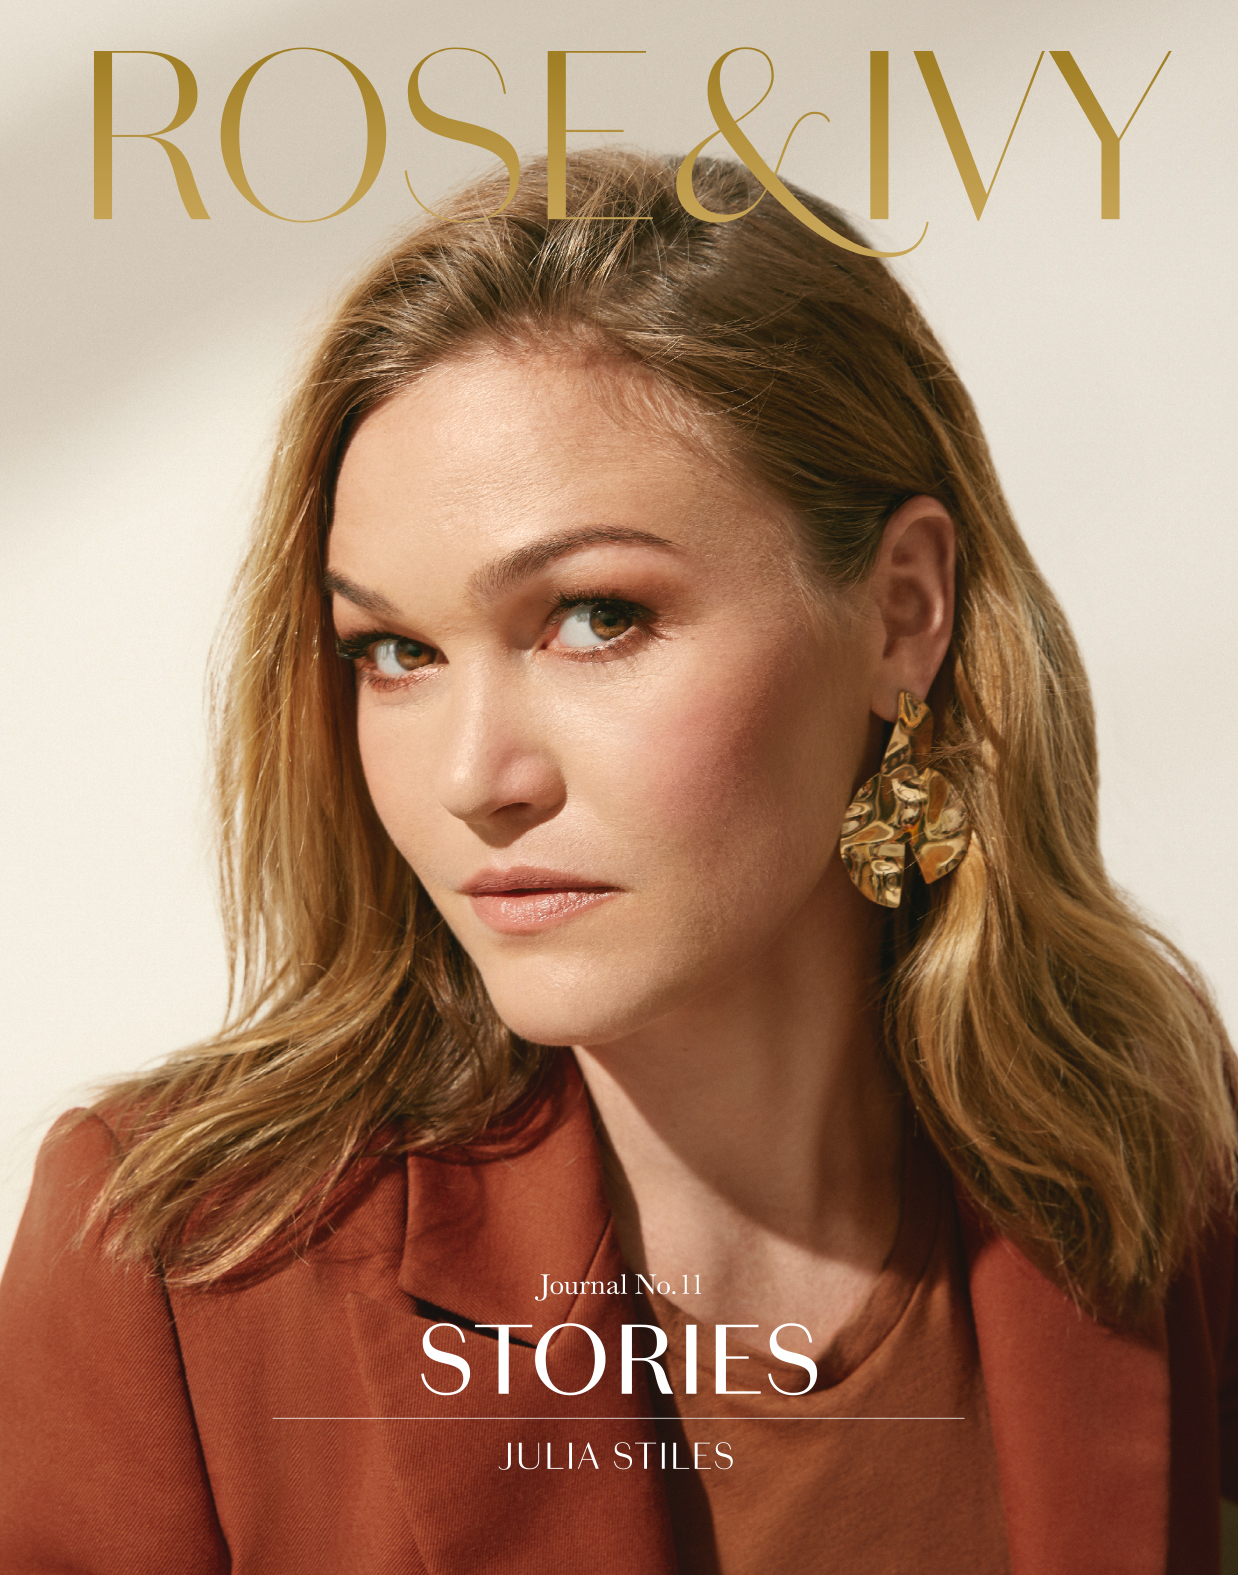 ROSE & IVY Journal No.11 The Stories Julia Stiles